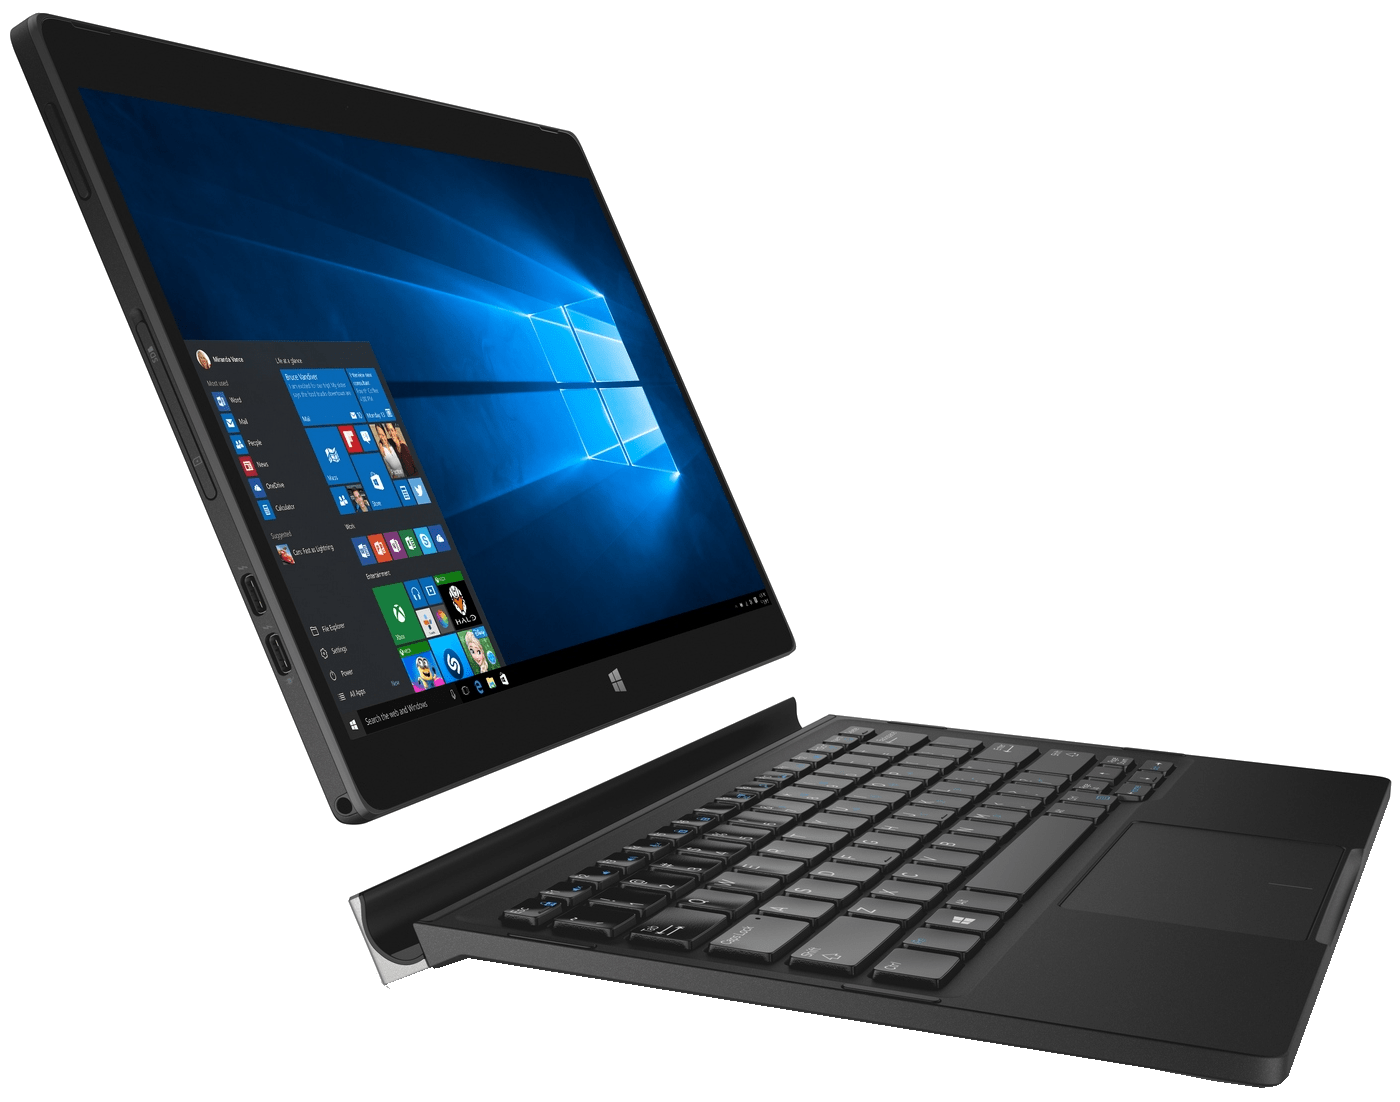 laptops vs tablets Generally speaking, tablets are 7-11 inches, while laptops are 12-16 inches within each device category, if you wander outside those ranges, your selection tends to drop fast.